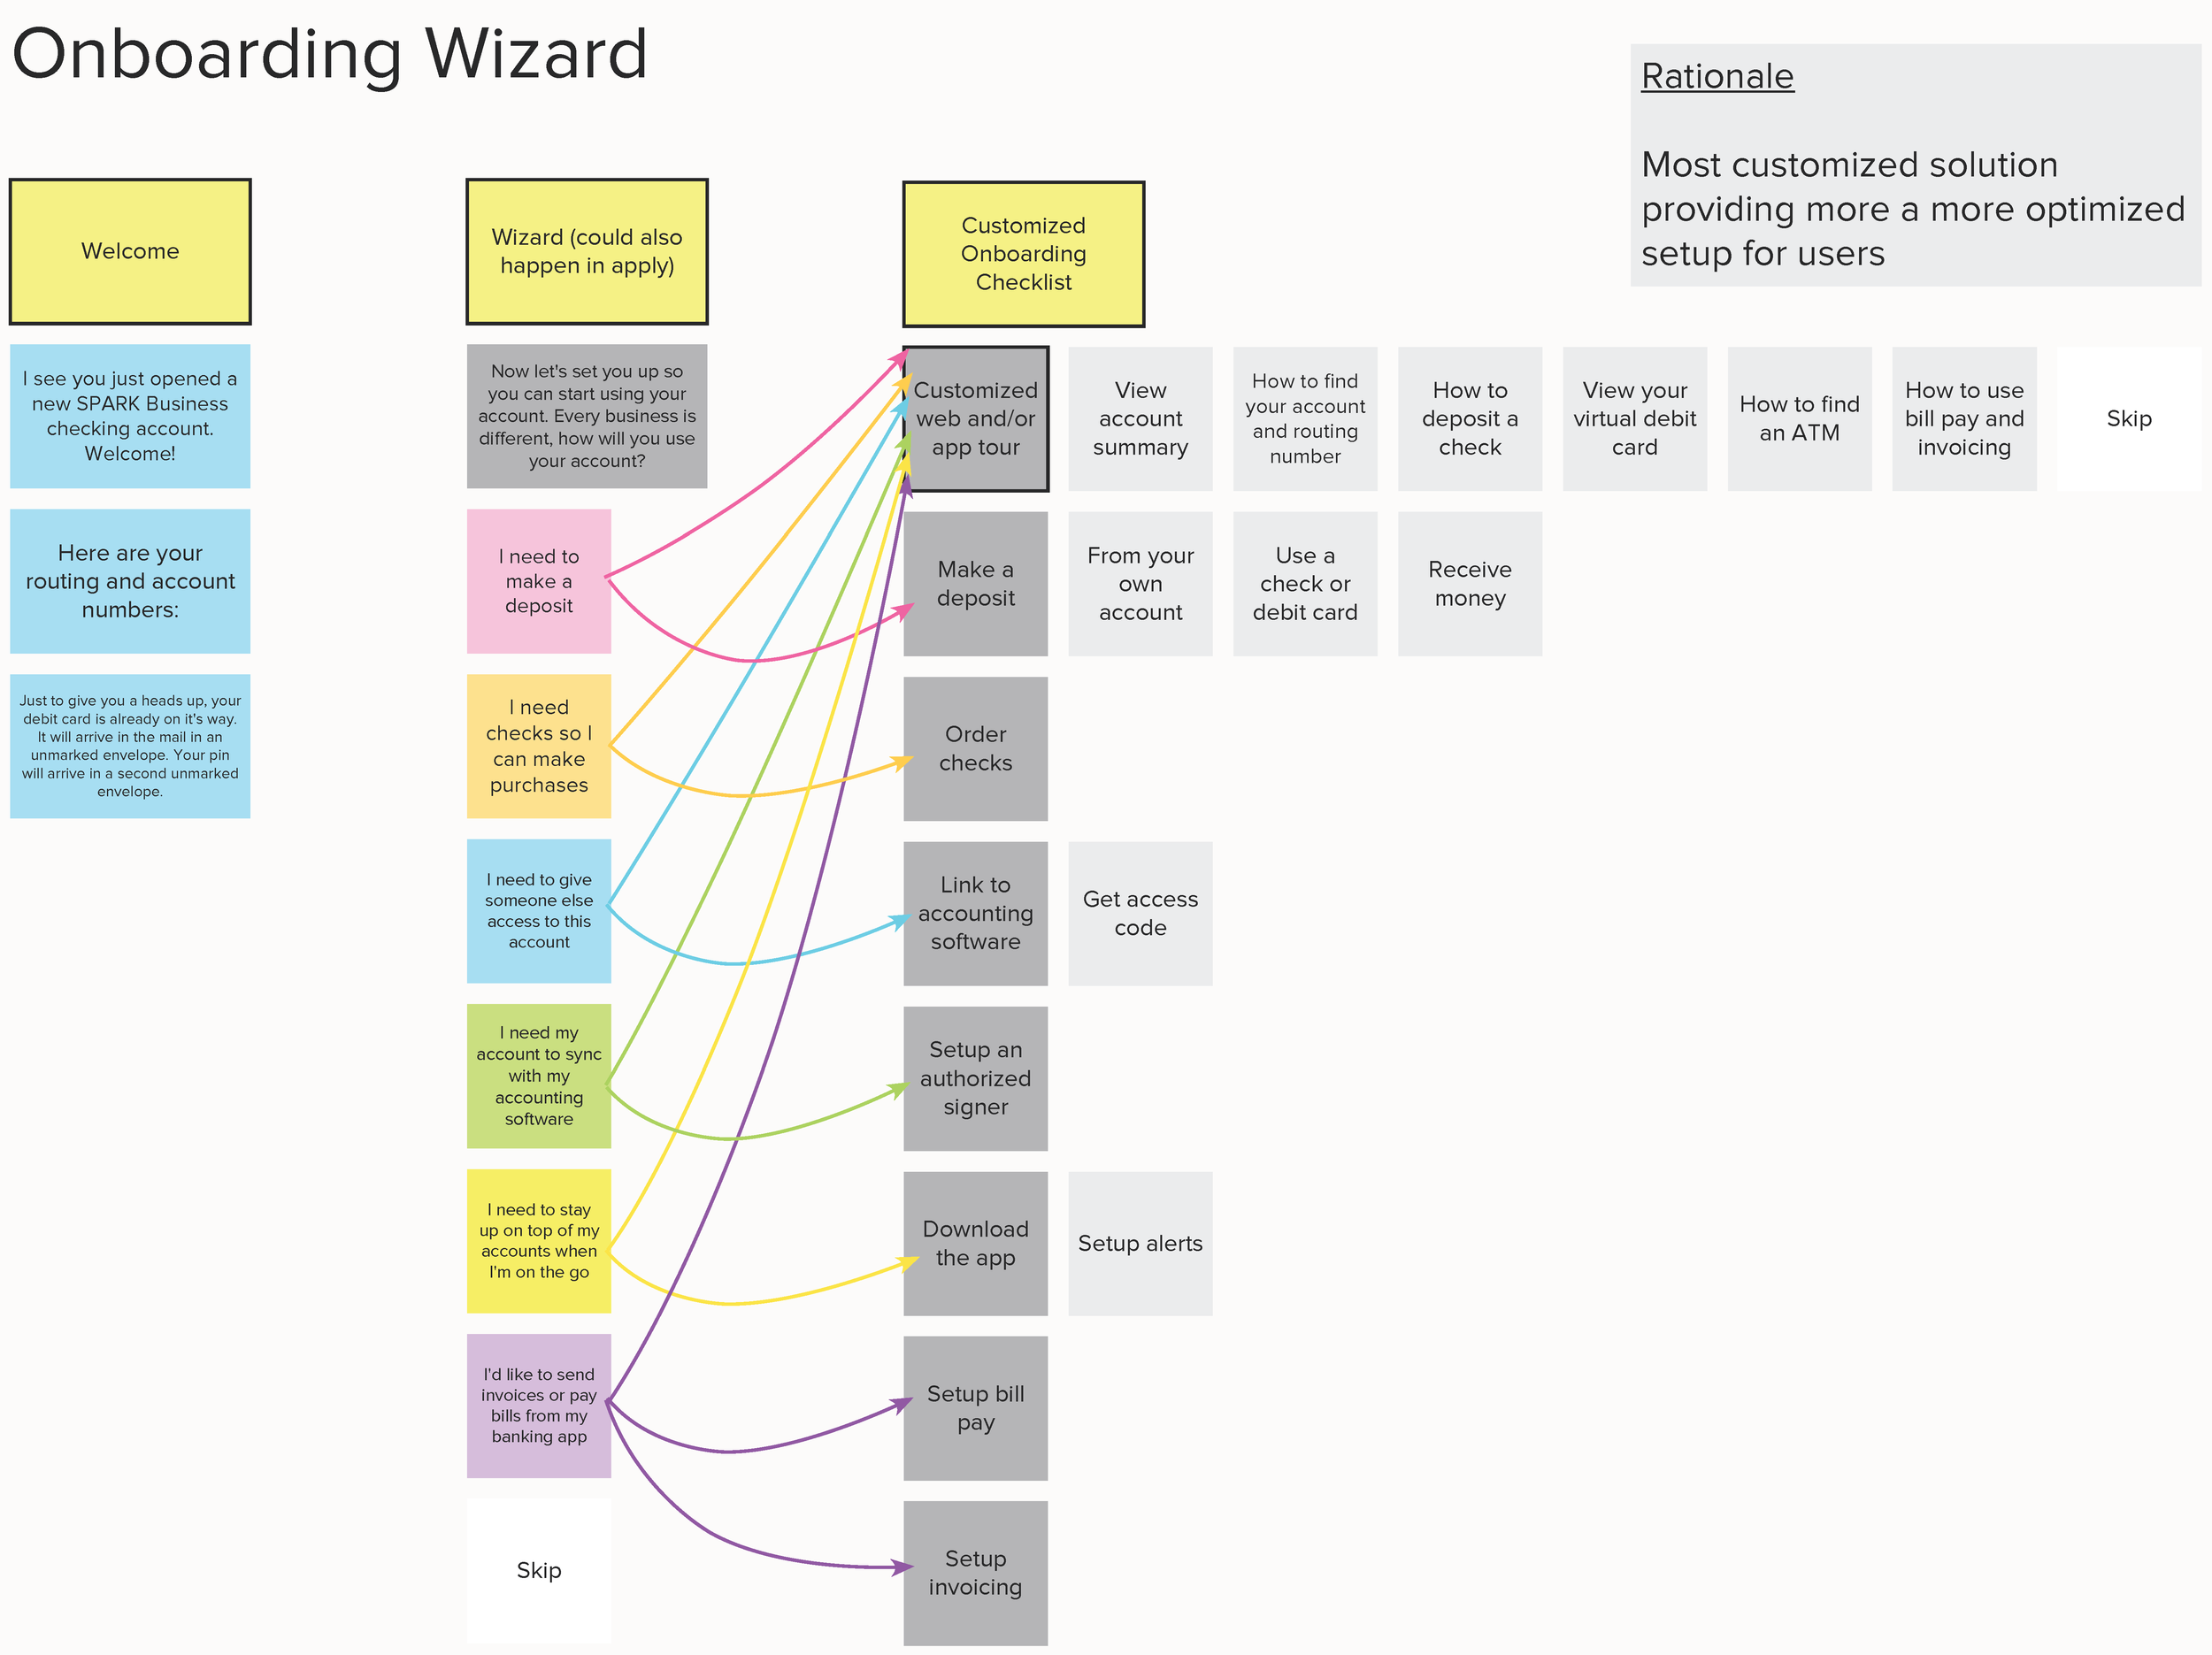 This concept was a wizard in which customers were asked a few questions upfront and then presented with relevant tasks in the onboarding space based on their answers